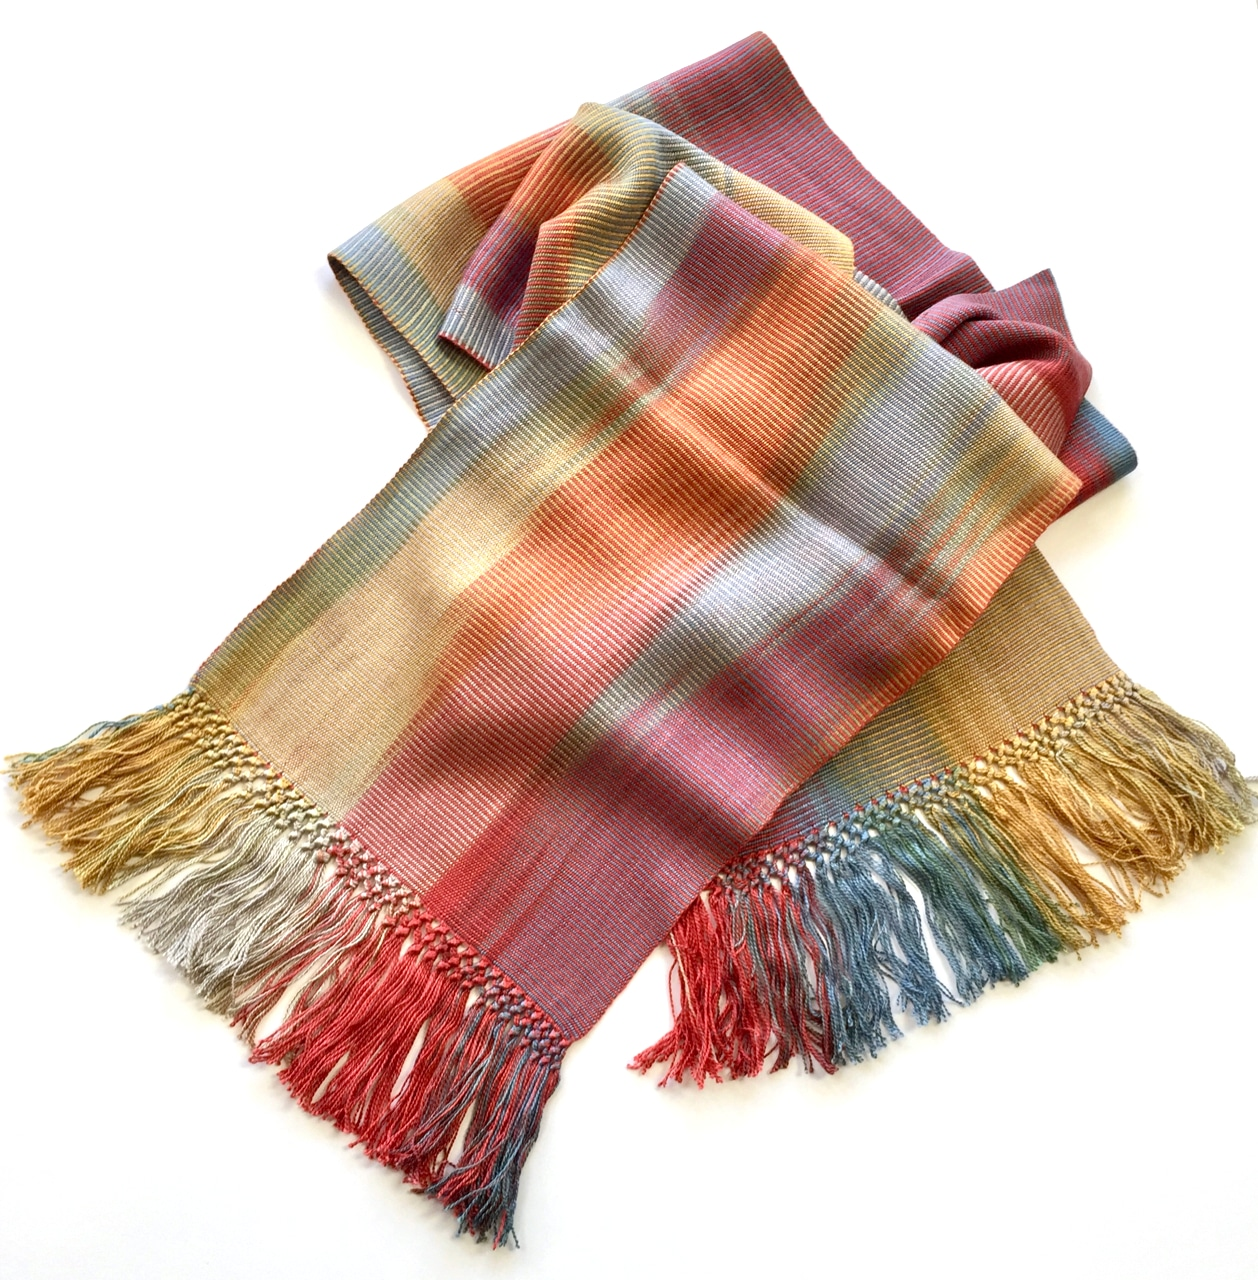 Red, Gray, Blue, Gold - Lightweight Bamboo Handwoven Scarf 8 x 68